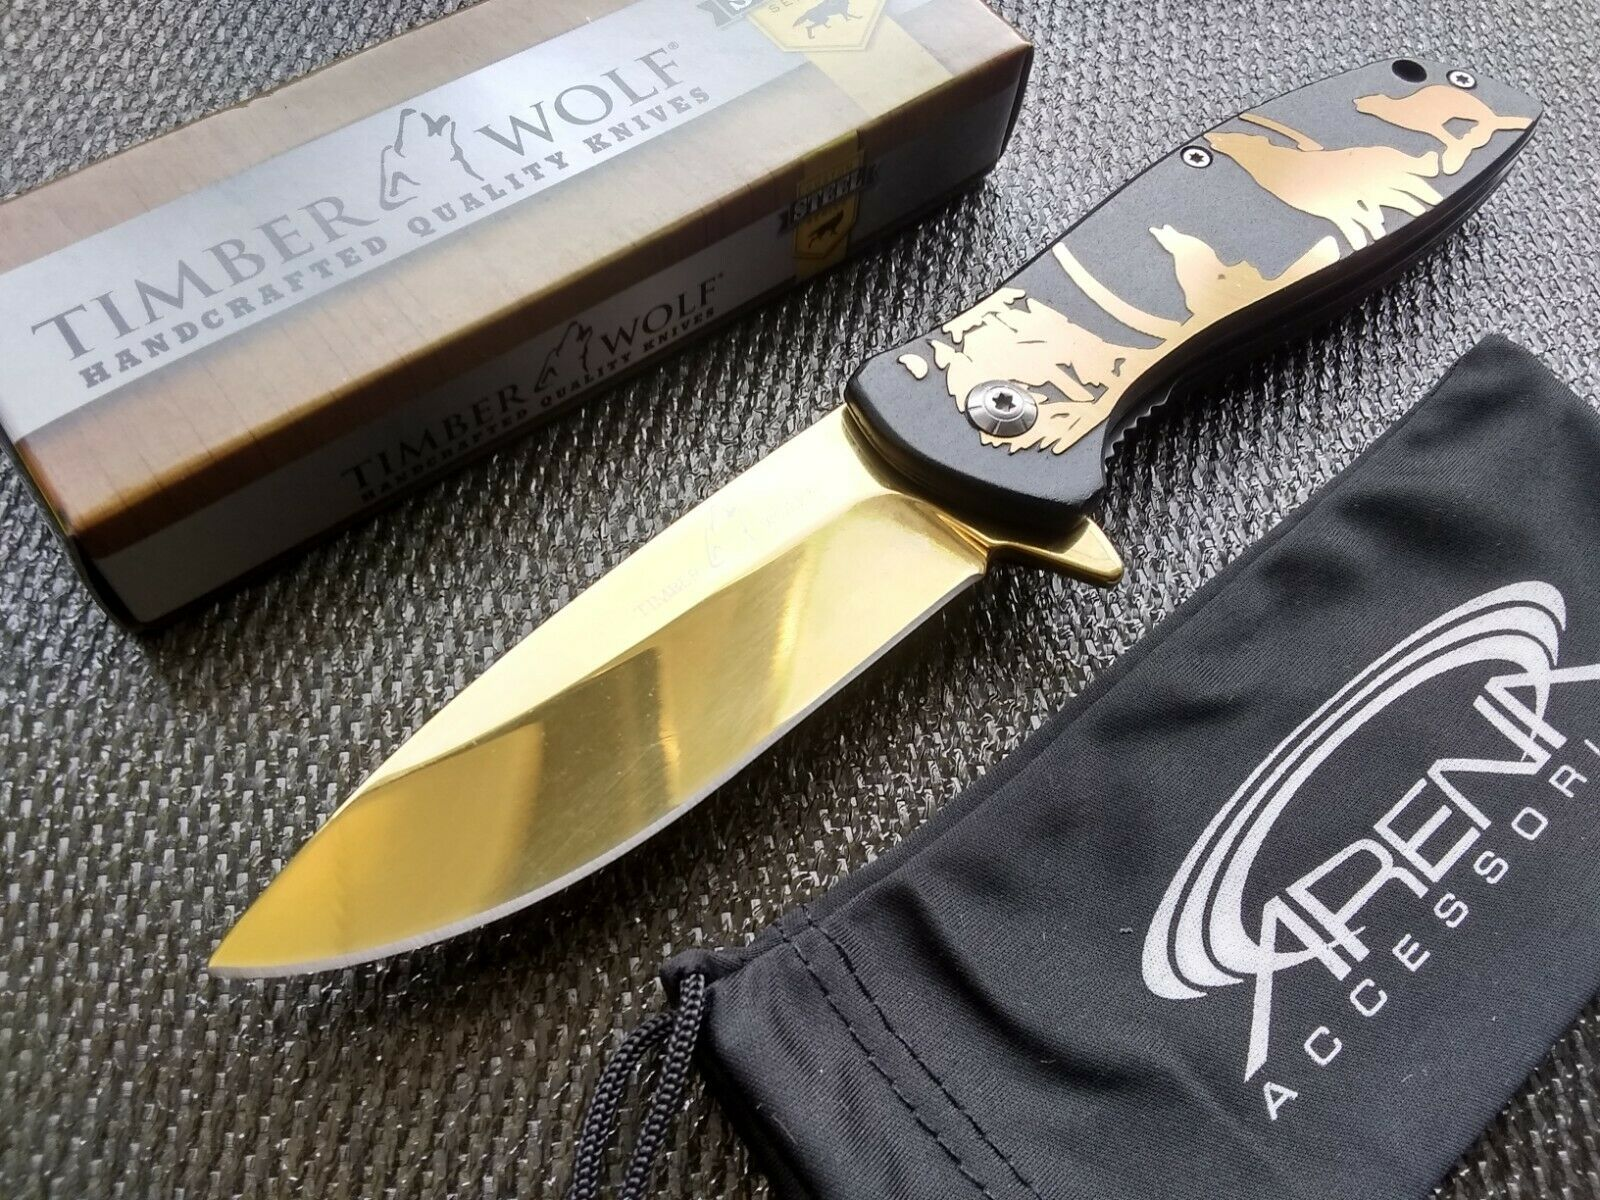 Howling Wolf Spring Assist Open Black & Gold Chrome Full Moon EDC Pocket Knife